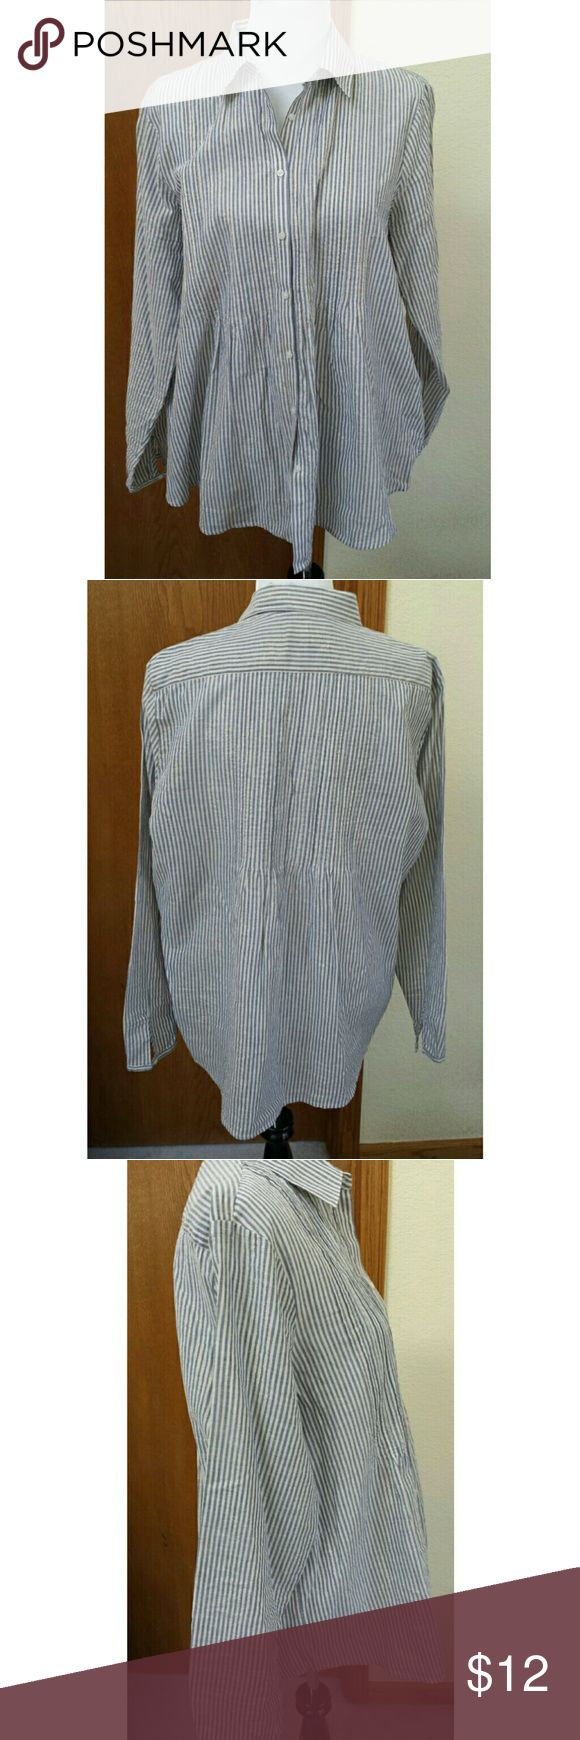 Land's End Pinstriped  pleated button down top Slate blue and white vertical pinstripes adorn this cotton blouse, which is pleated part way down, then blouses out. Soft. Excellent pre-owned condition. Lands' End Tops Button Down Shirts